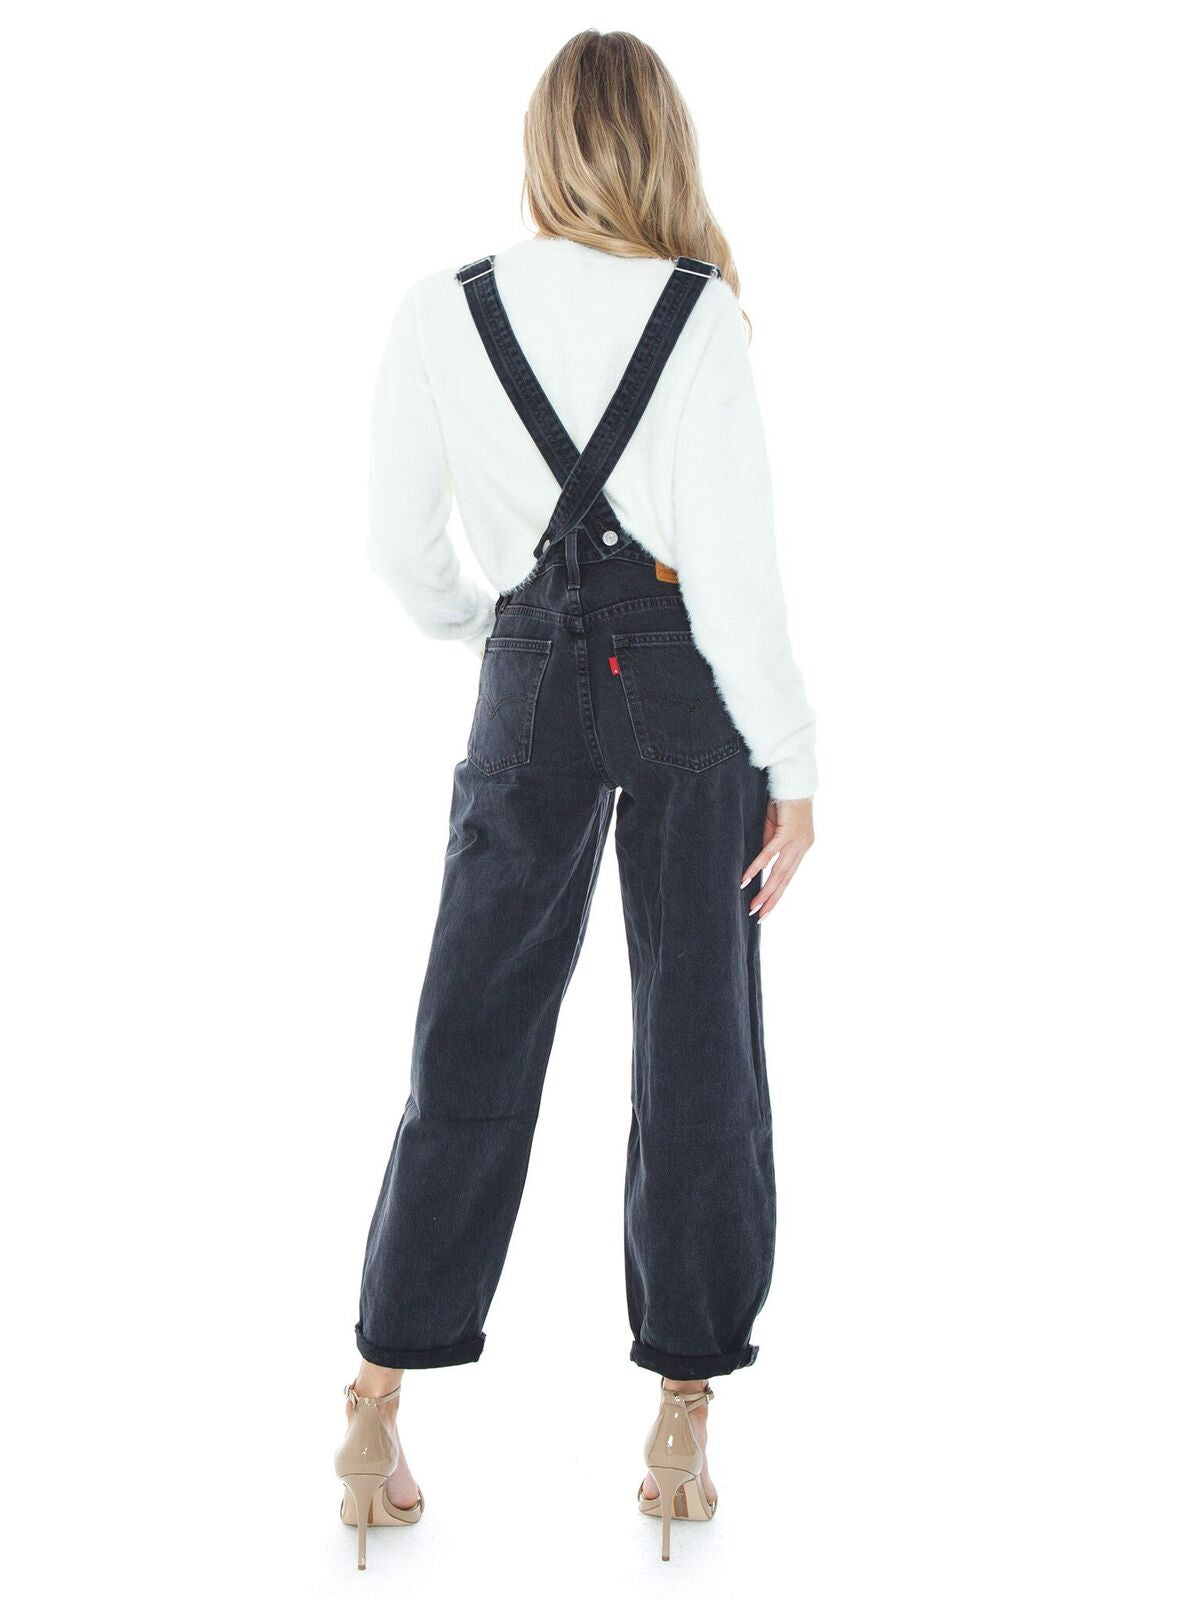 Women wearing a jumpsuit rental from Levis called Baggy Overall